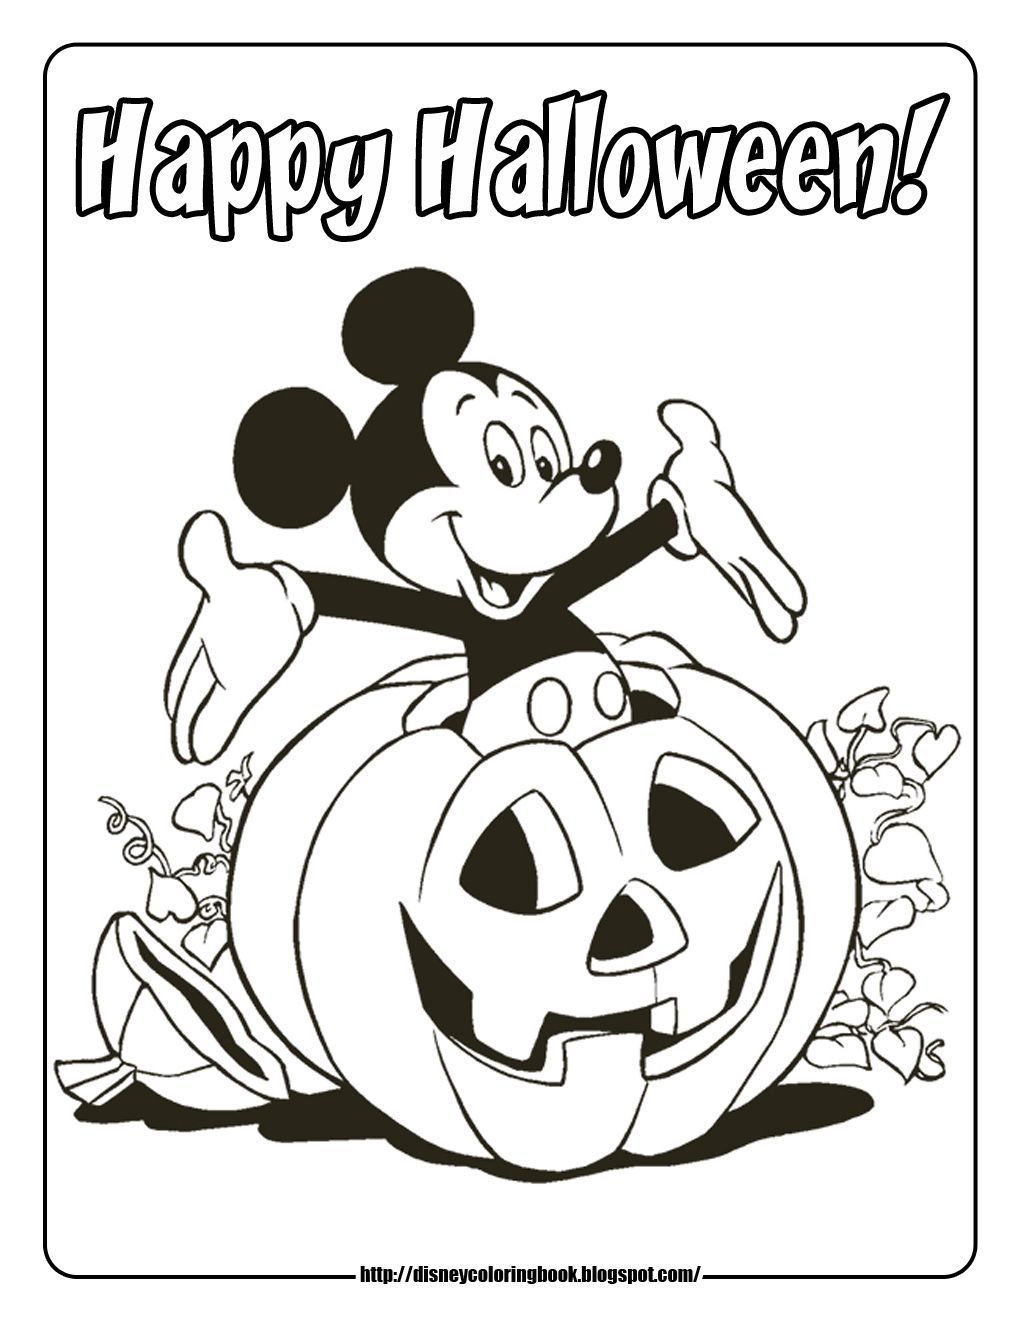 Disney Coloring Pages And Sheets For Kids Mickey And Friends Halloween 1 Fre Halloween Coloring Pages Free Halloween Coloring Pages Halloween Coloring Sheets